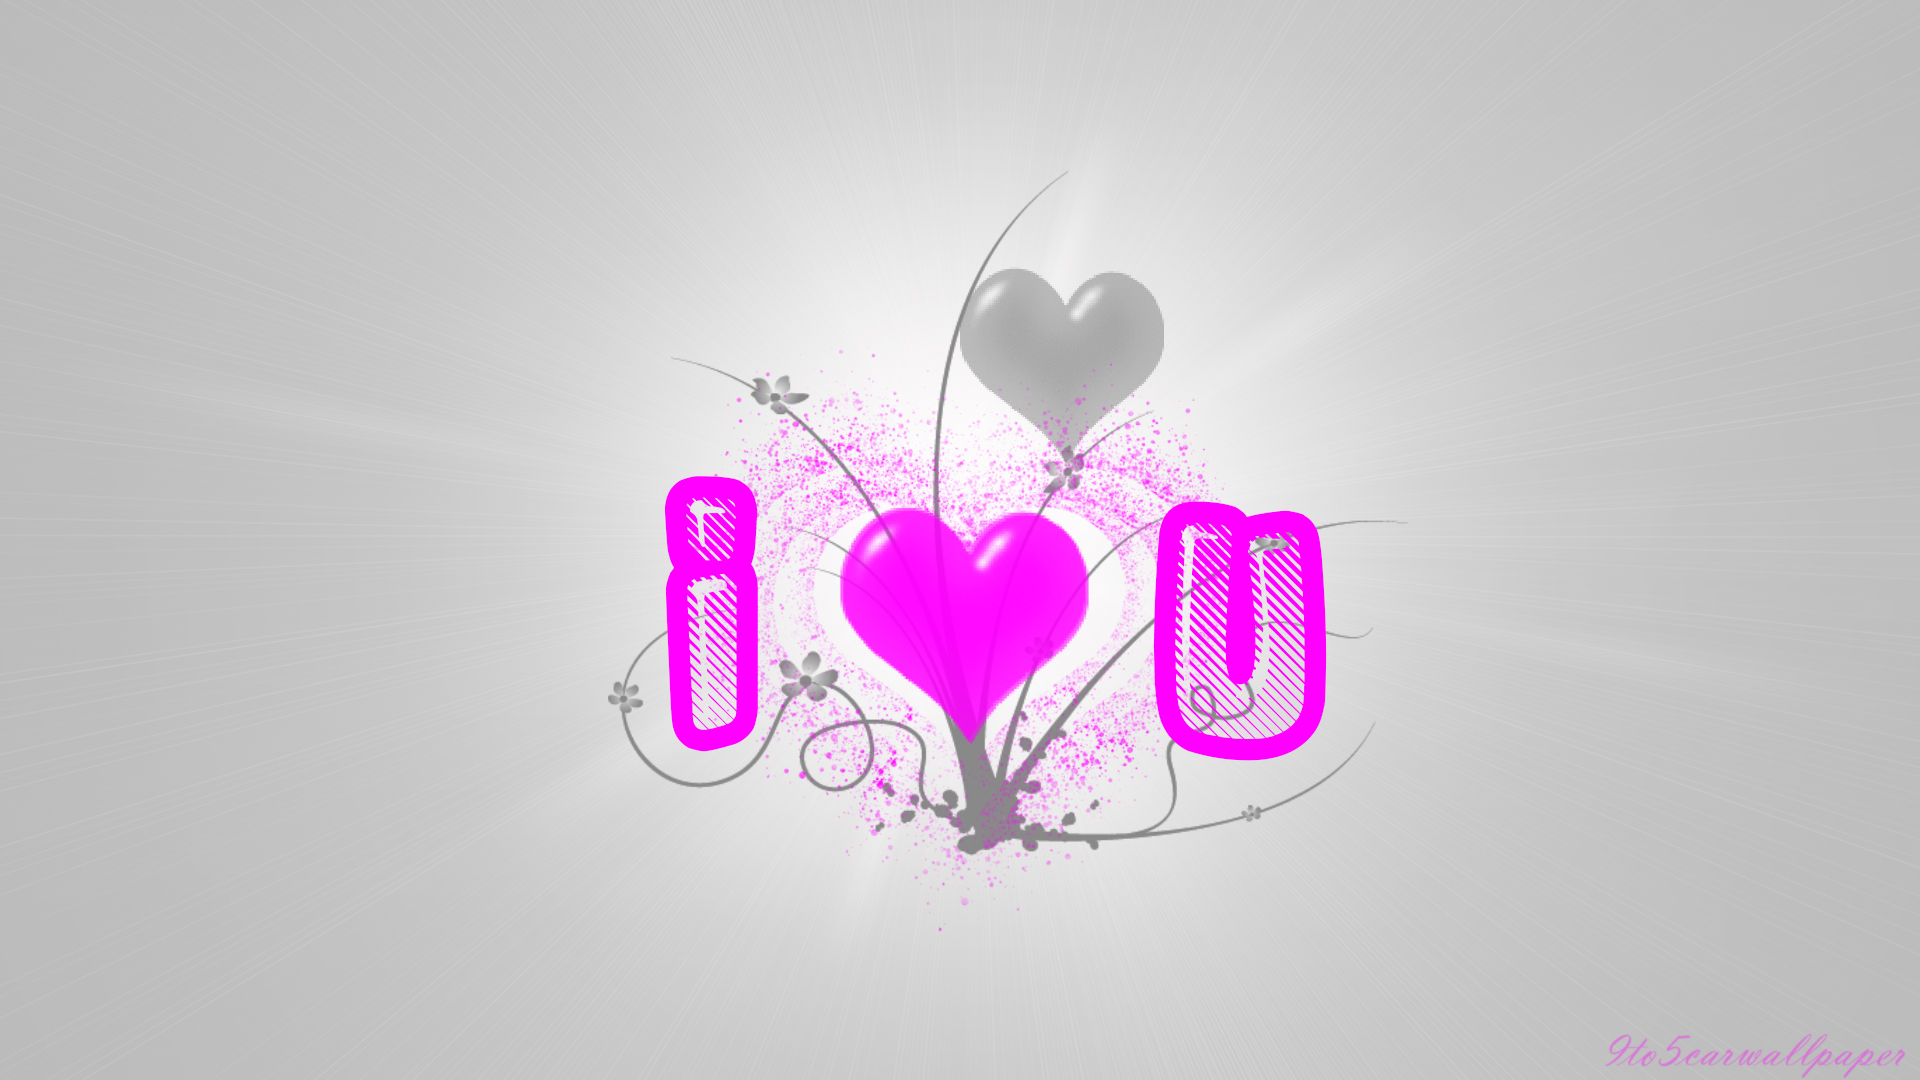 i love you cards images  wishes  9to5 car wallpapers